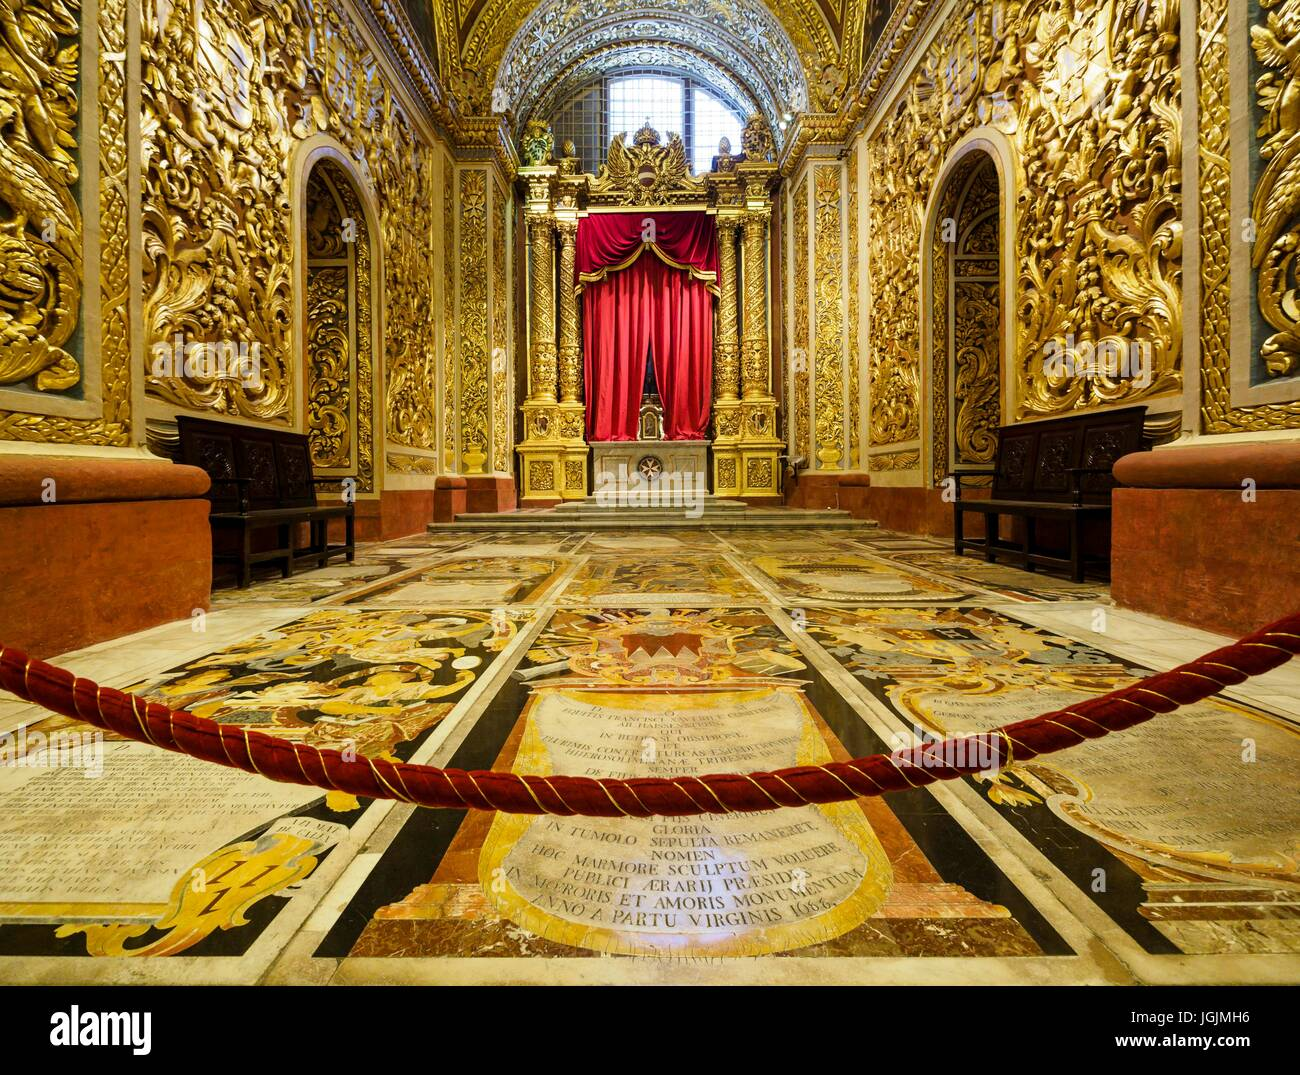 Interior view of St. John's Co-Cathedral at the capital Valletta / Malta. - Stock Image